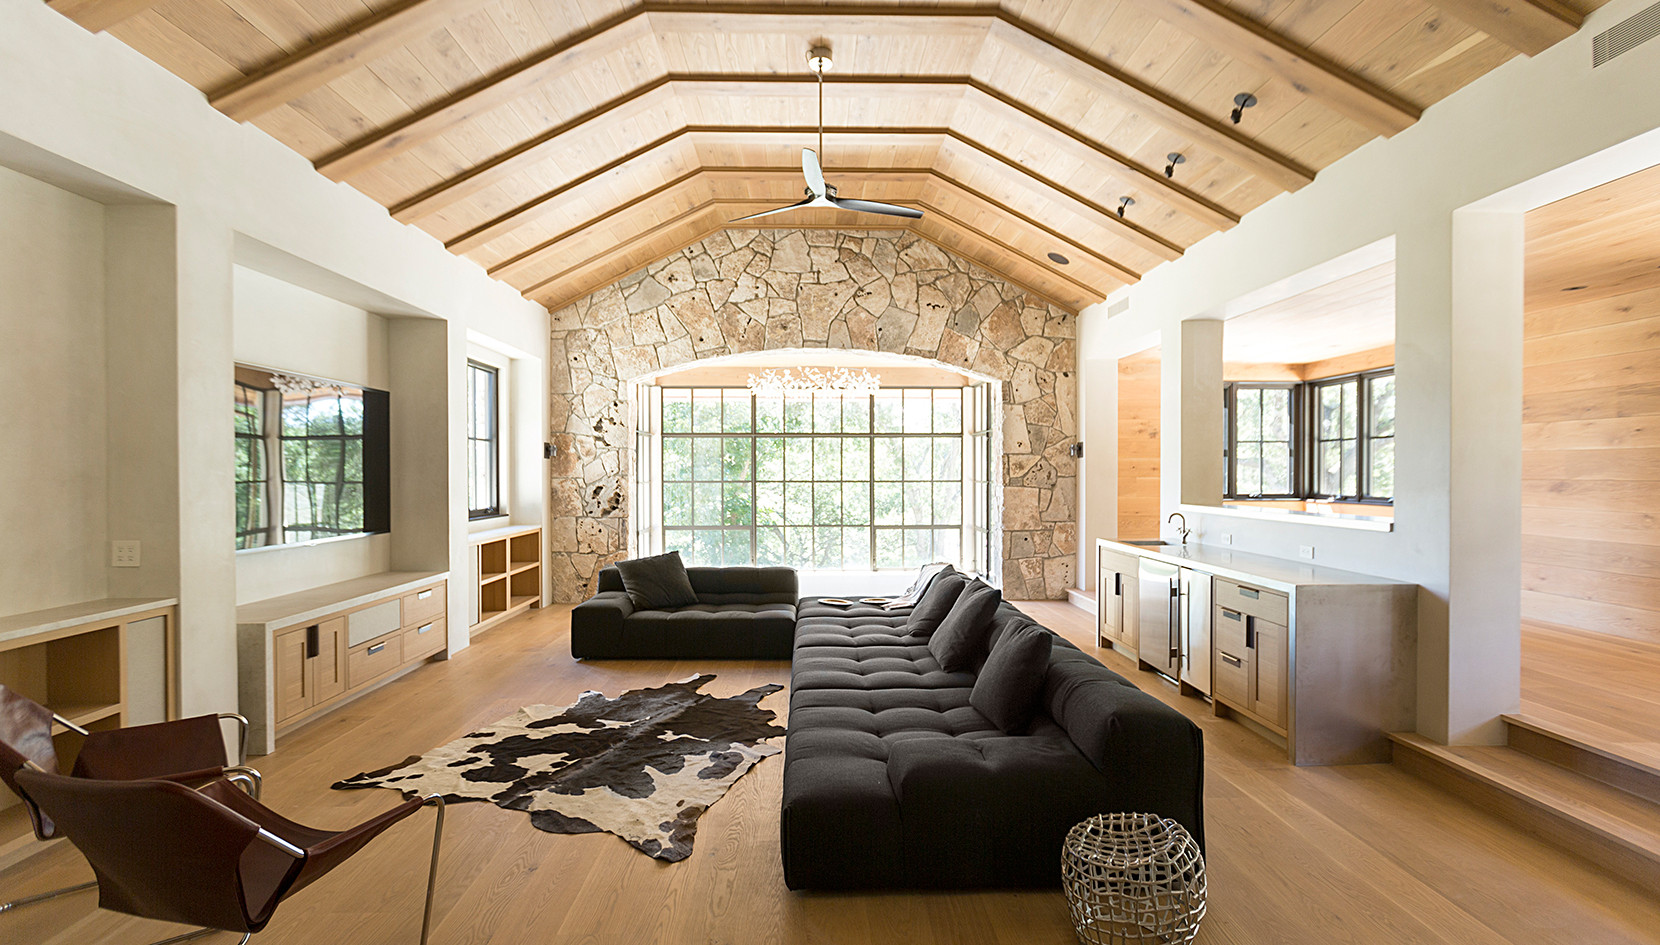 Live Sawn Oak Harwood Flooring and Ceiling Material